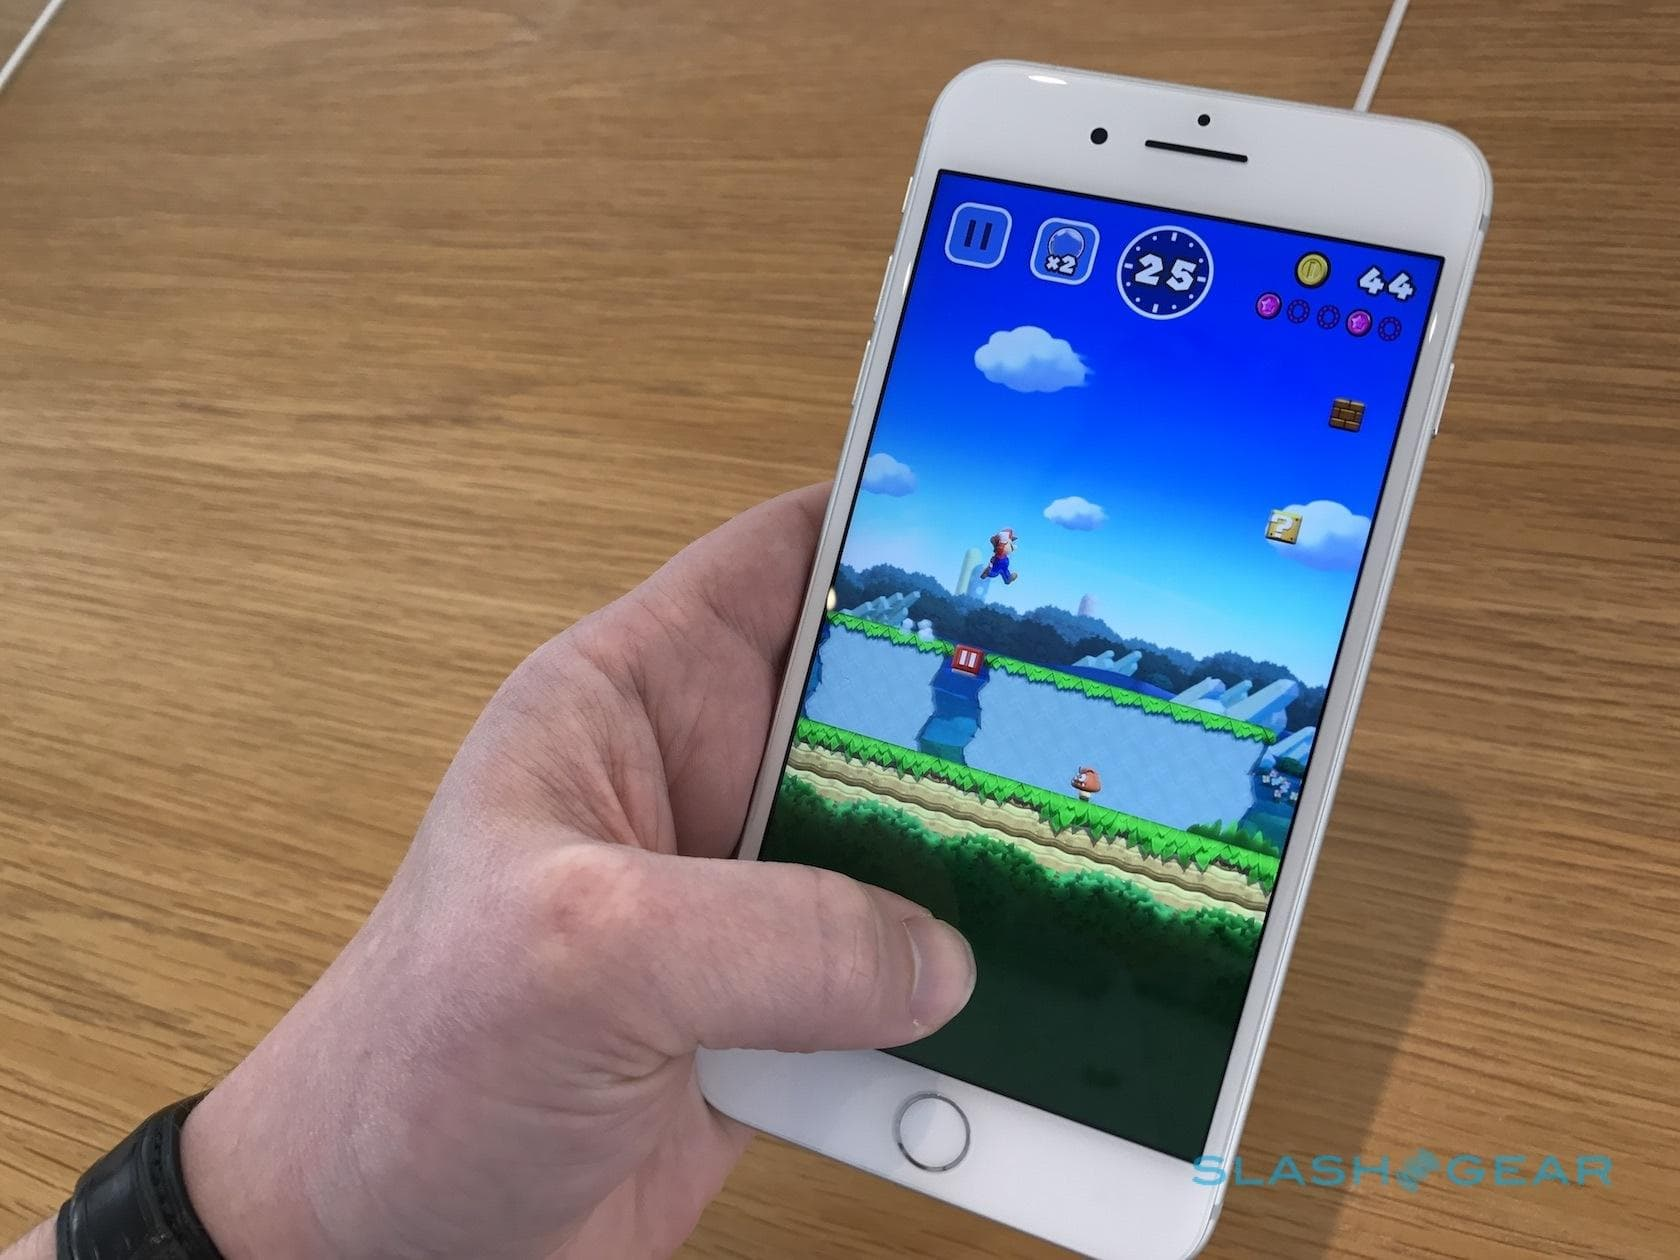 Nintendo gaming phone rumor seems far-fetched – but then so did Switch